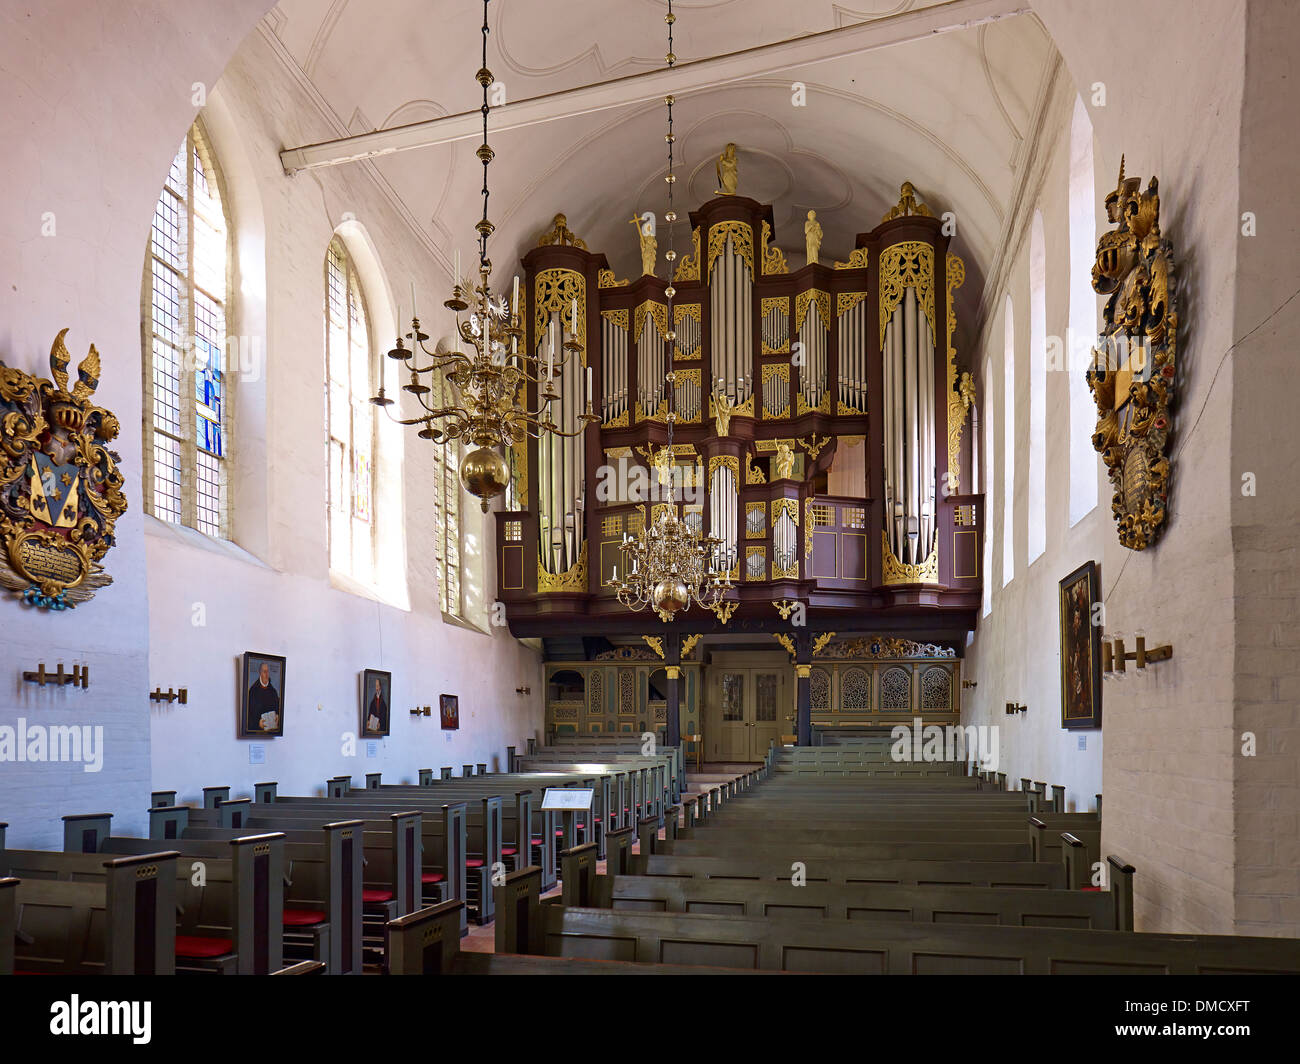 Hus / Schnitger organ in the church St. Cosmae and Damiani, Hanseatic city of Stade, Lower Saxony, Germany - Stock Image